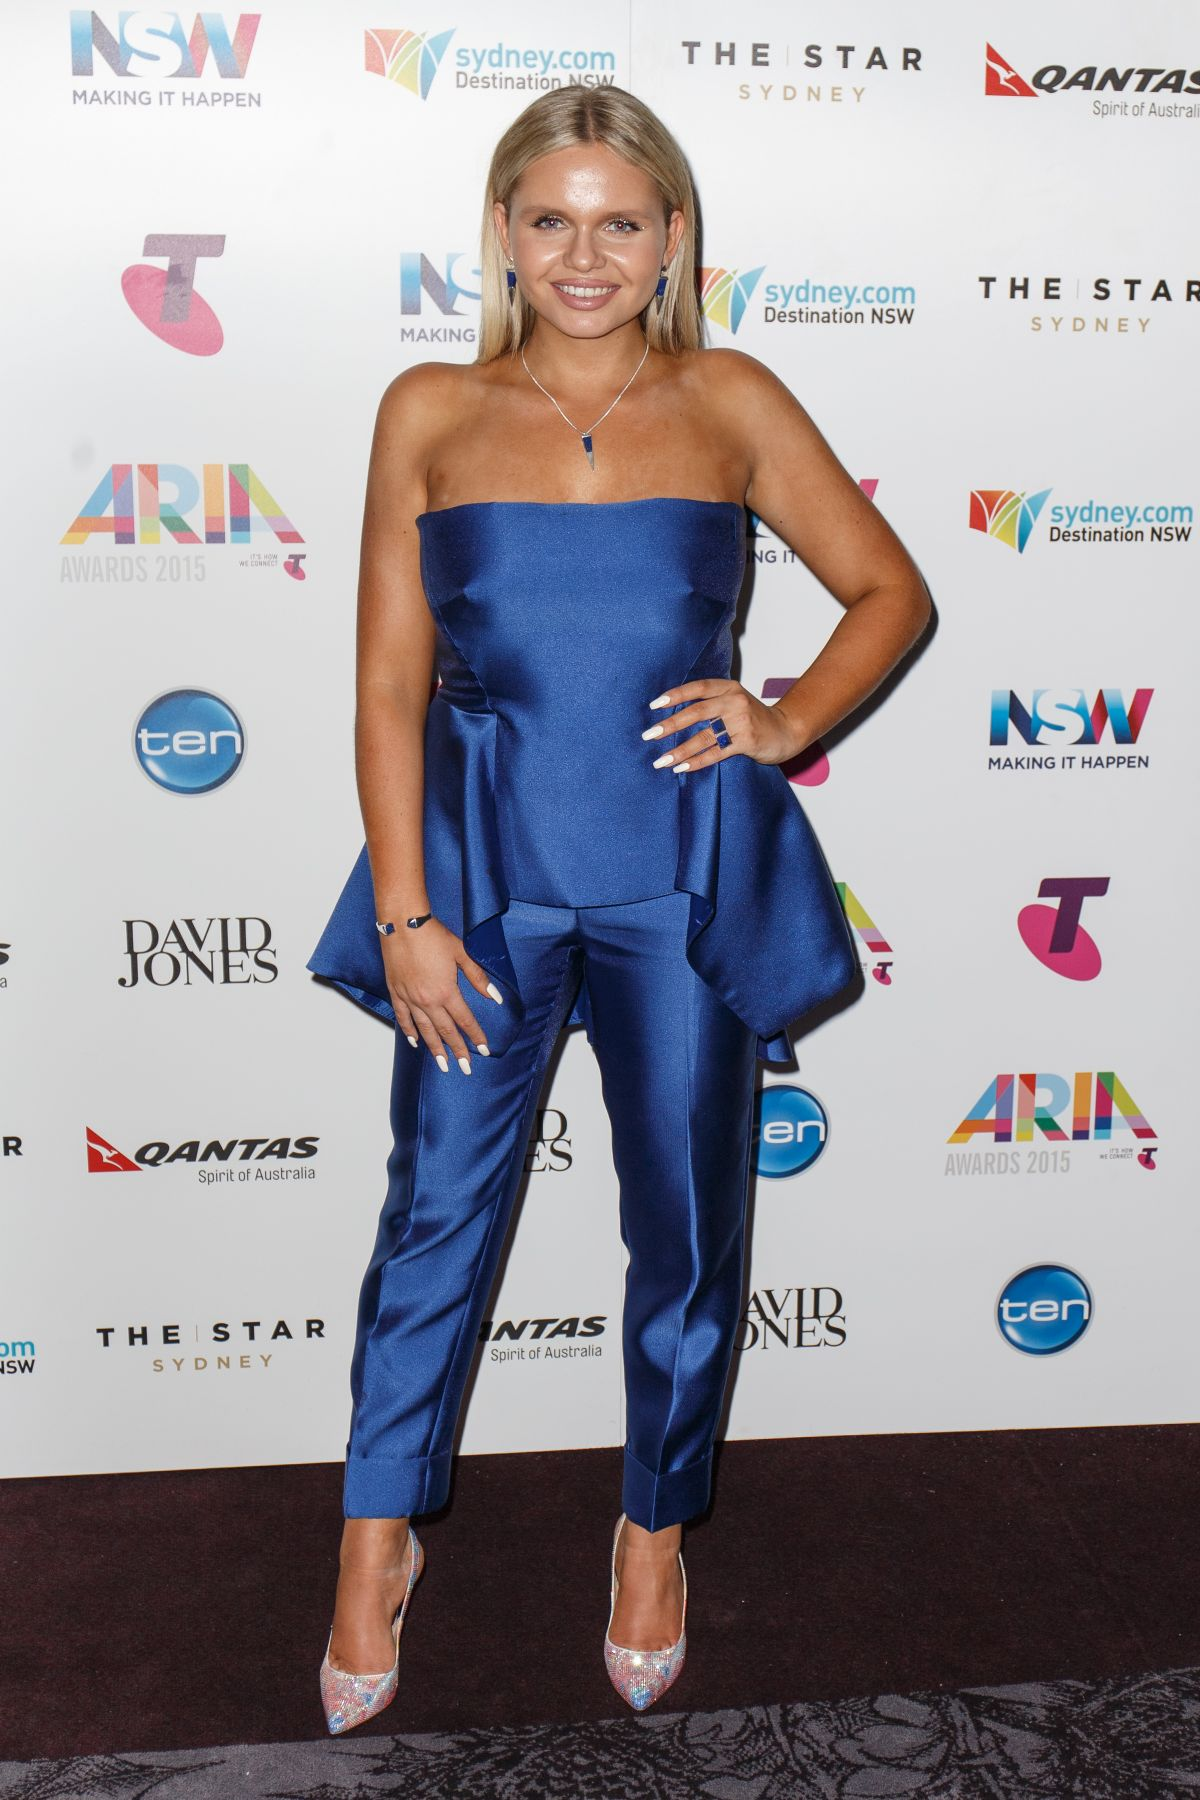 ALLI SIMPSON at 29th Annual Aria Awards 2015 in Sydney 11/26/2015